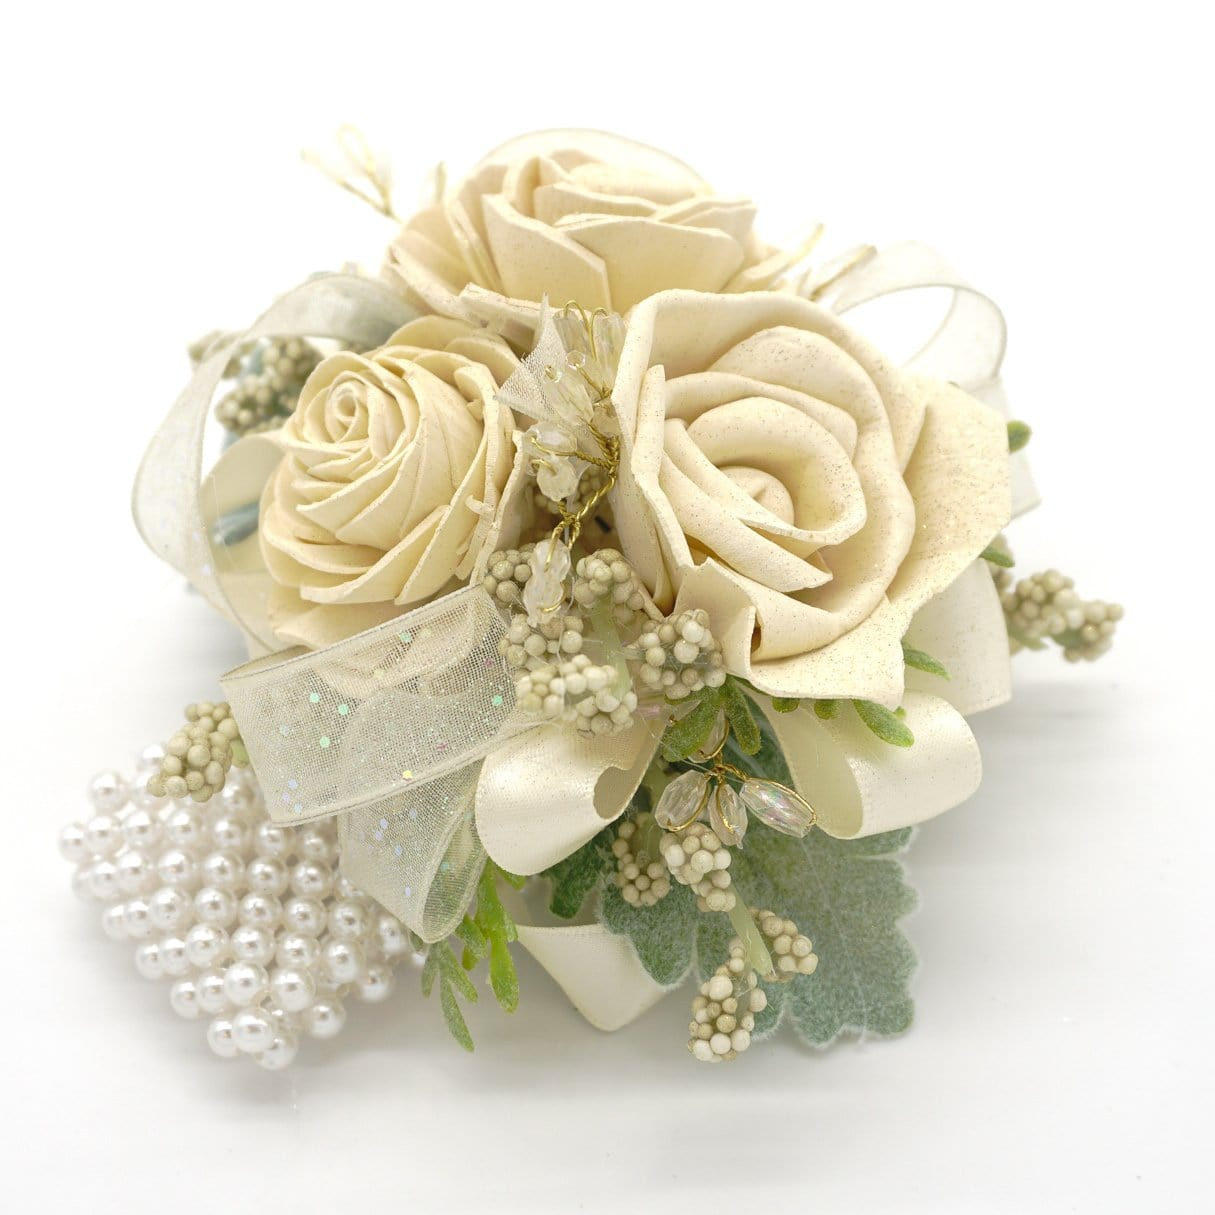 Formal Cream Corsage